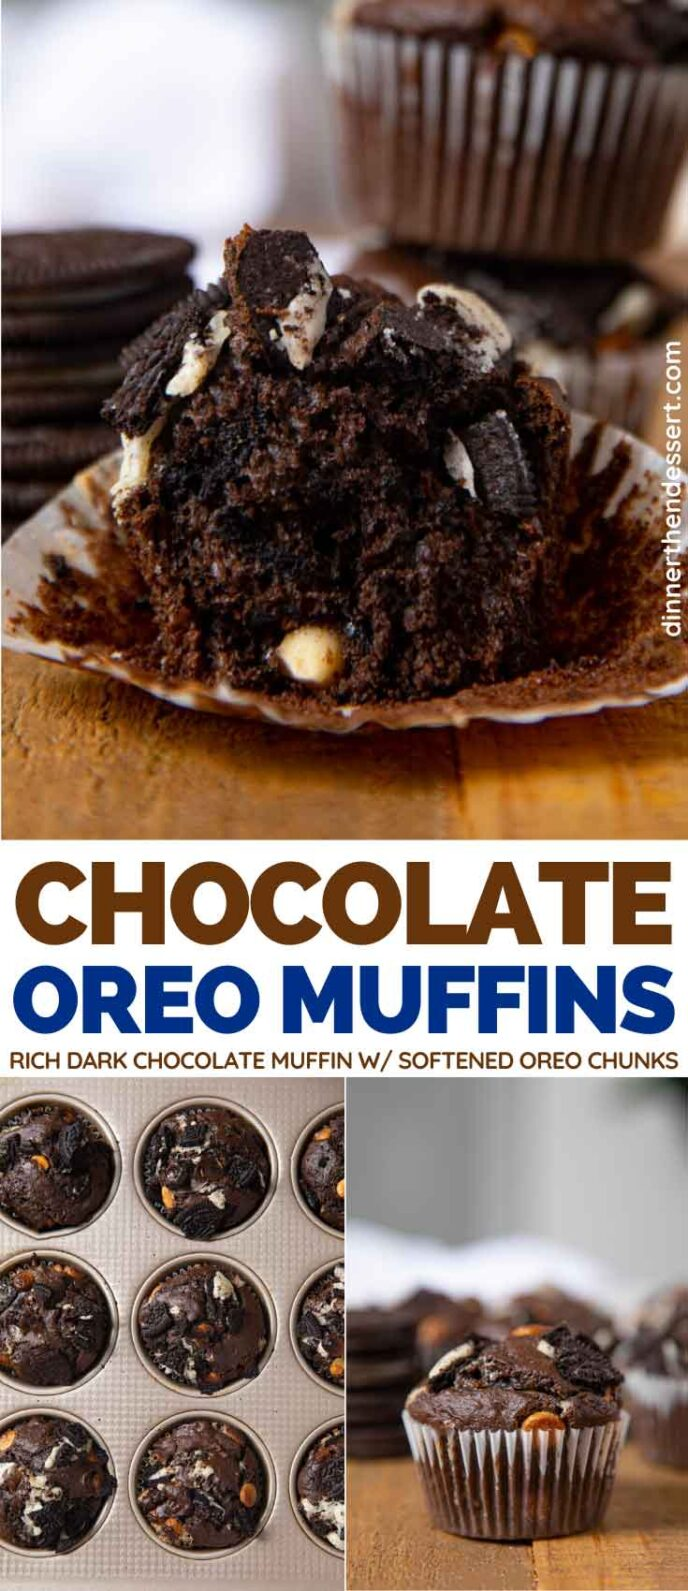 Chocolate Oreo Muffins collage